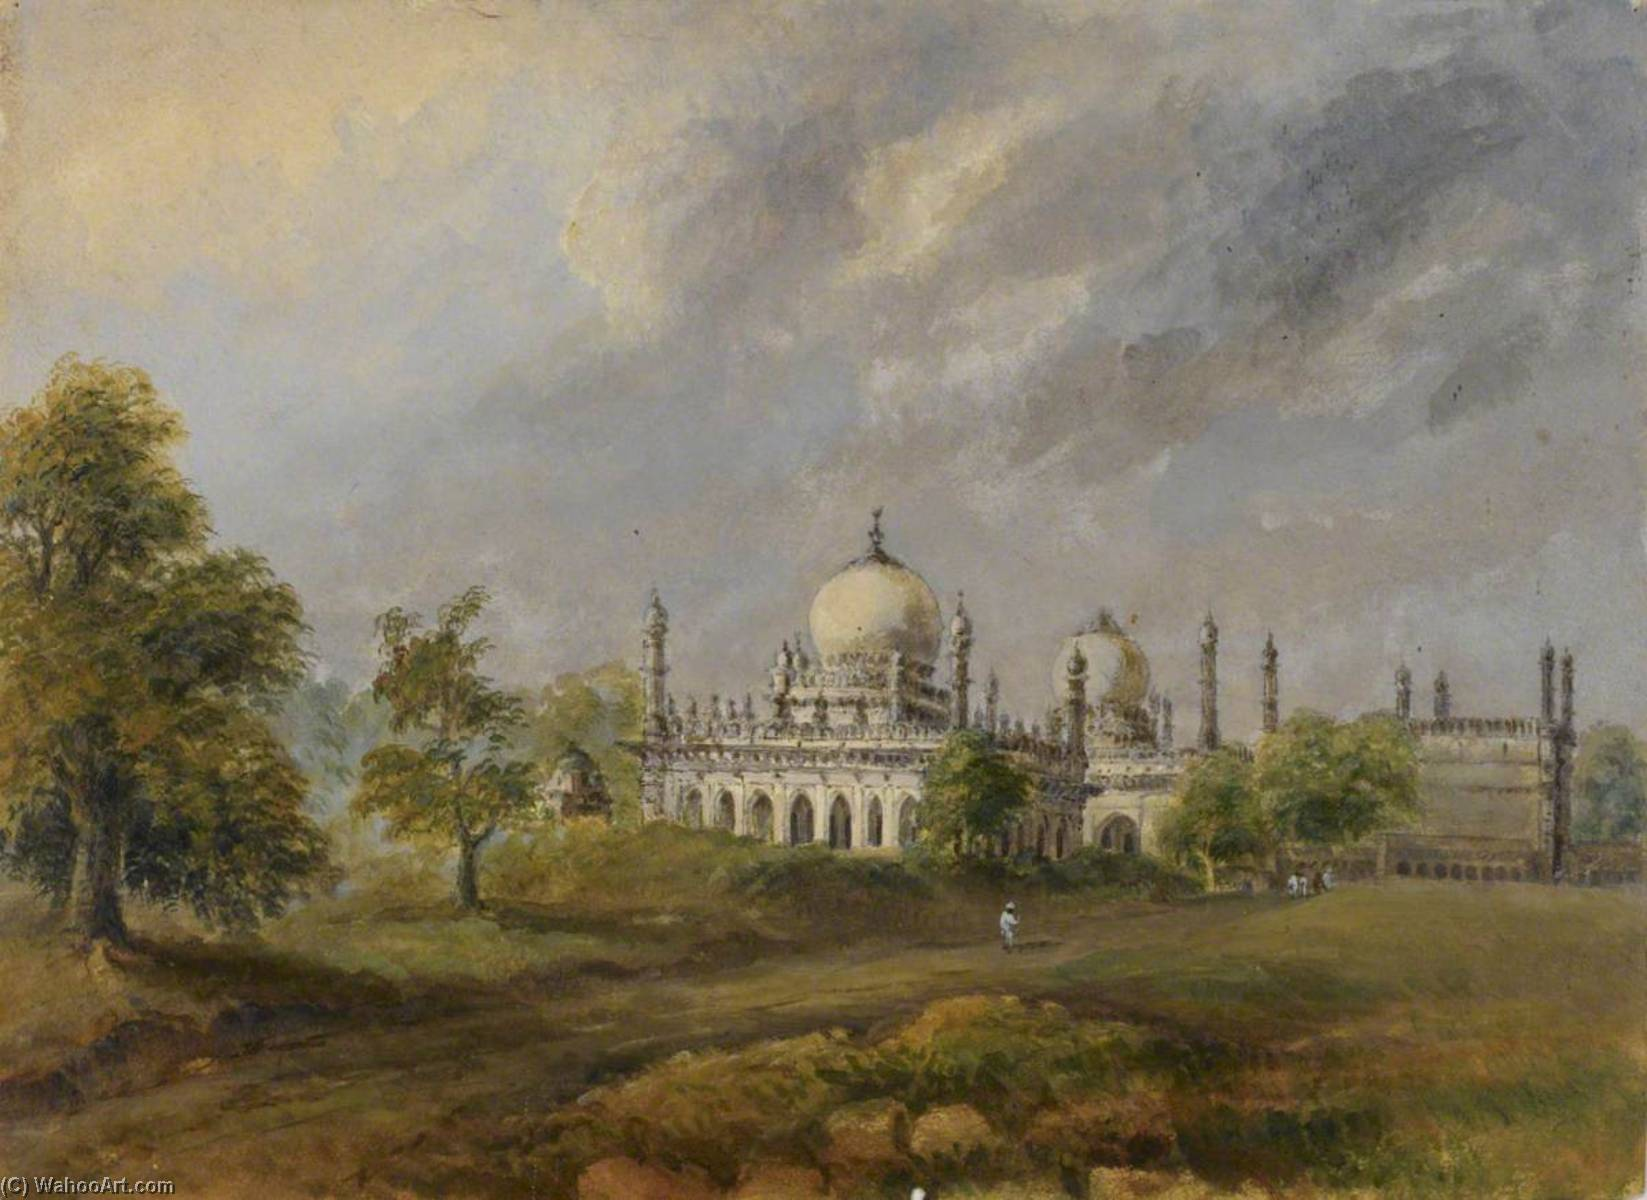 Ibrahim Rauza, Tomb and Mosque Complex of Ibrahim Adil Shah (ruled 1580–1627), at Bijapur, 1875 by William Robert Houghton | WahooArt.com